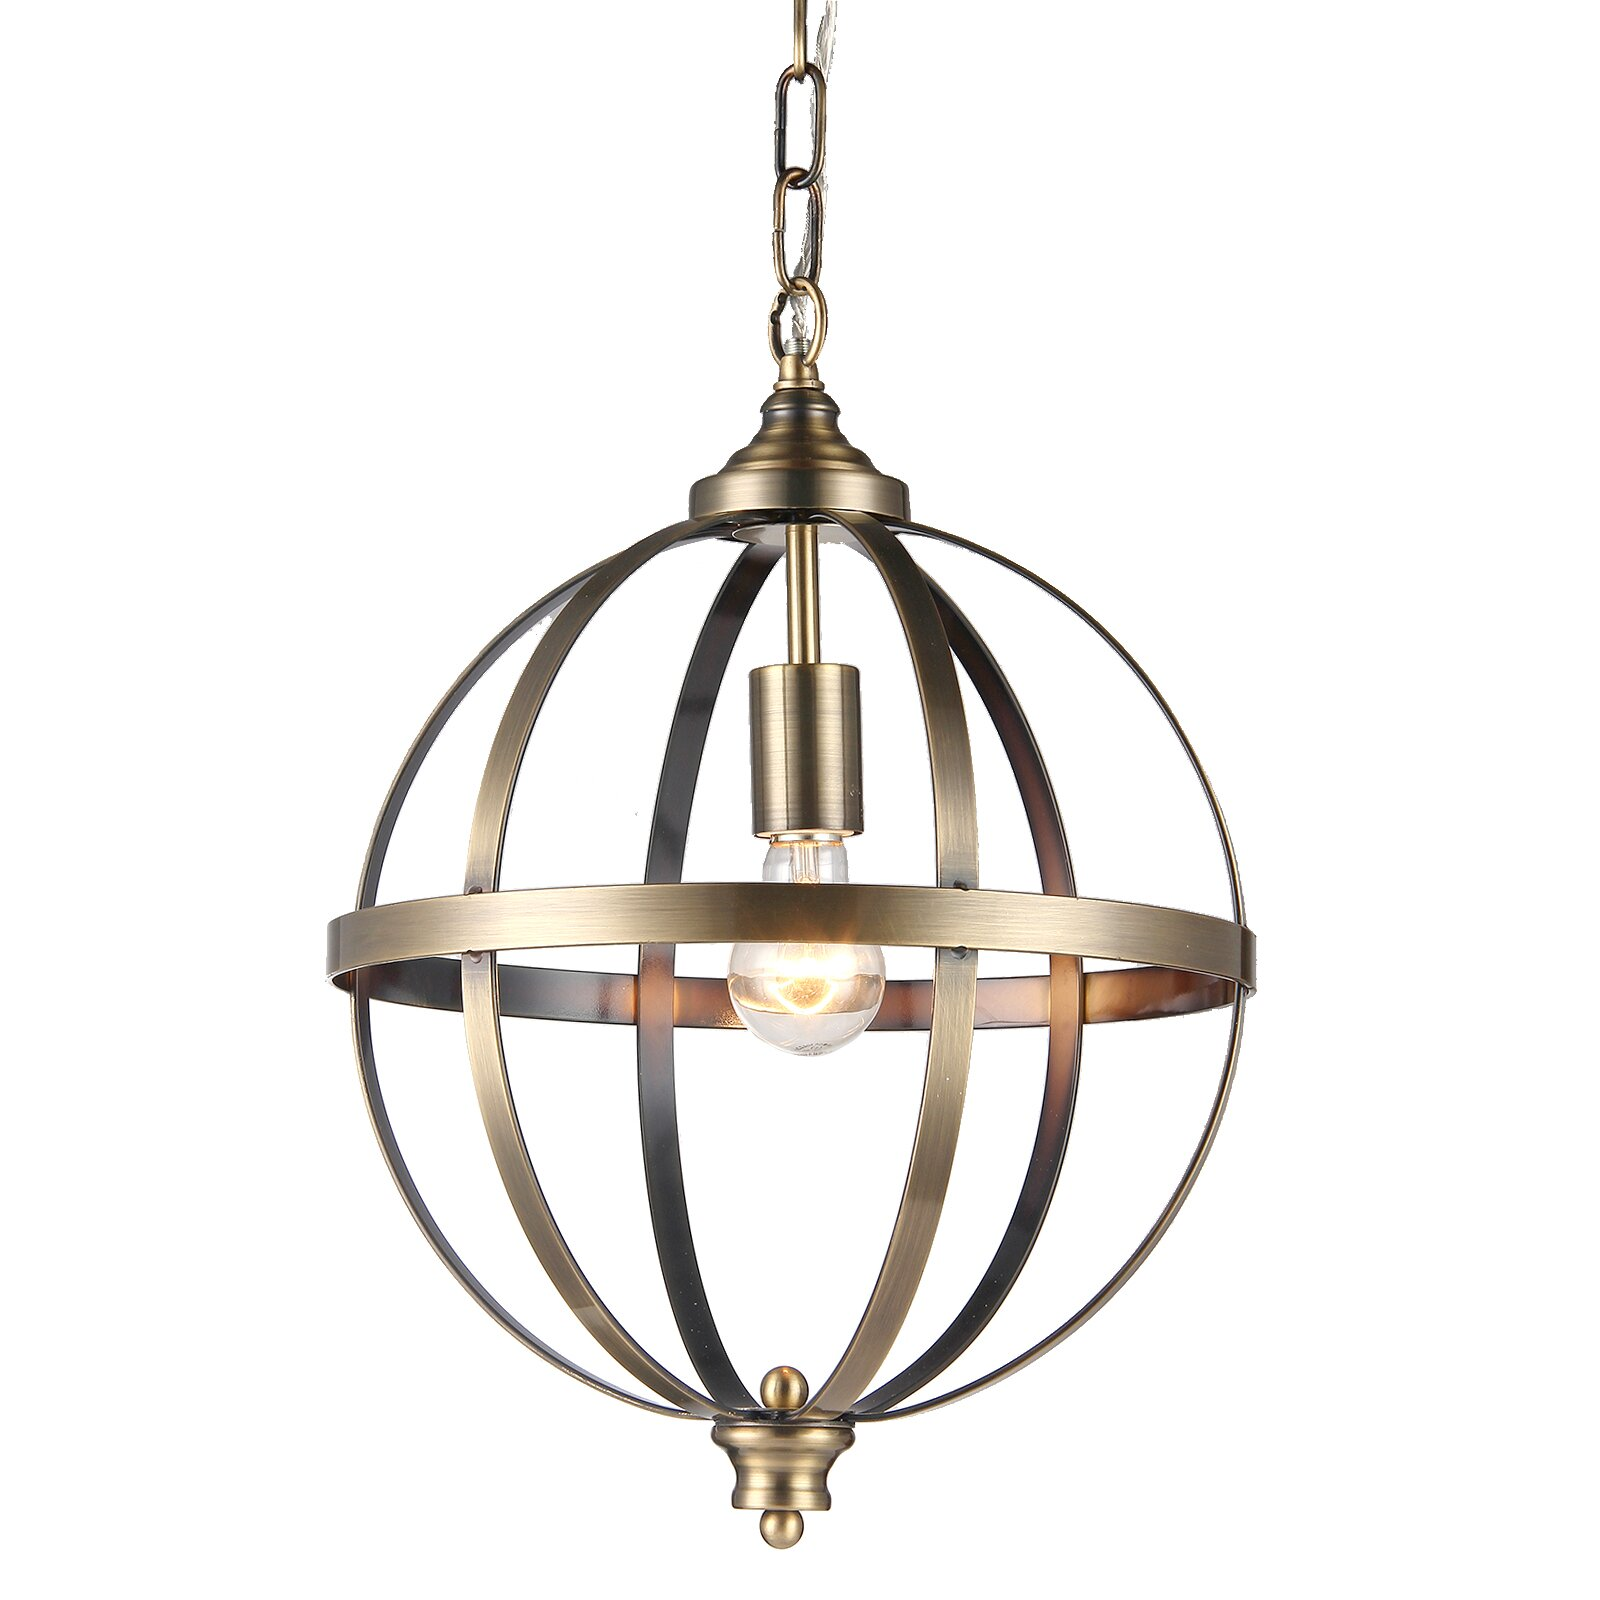 Edvivi 1 Light Globe Pendant  Wayfair. Classic Kitchens & Cabinets. How To Redo Kitchen Cabinets. Kitchen Color Schemes With Oak Cabinets. Kitchen Cabinet Dimension. Best Home Kitchen Cabinets. Salvaged Kitchen Cabinets. Kitchen Cabinet Design Images. White Shaker Kitchen Cabinet Doors